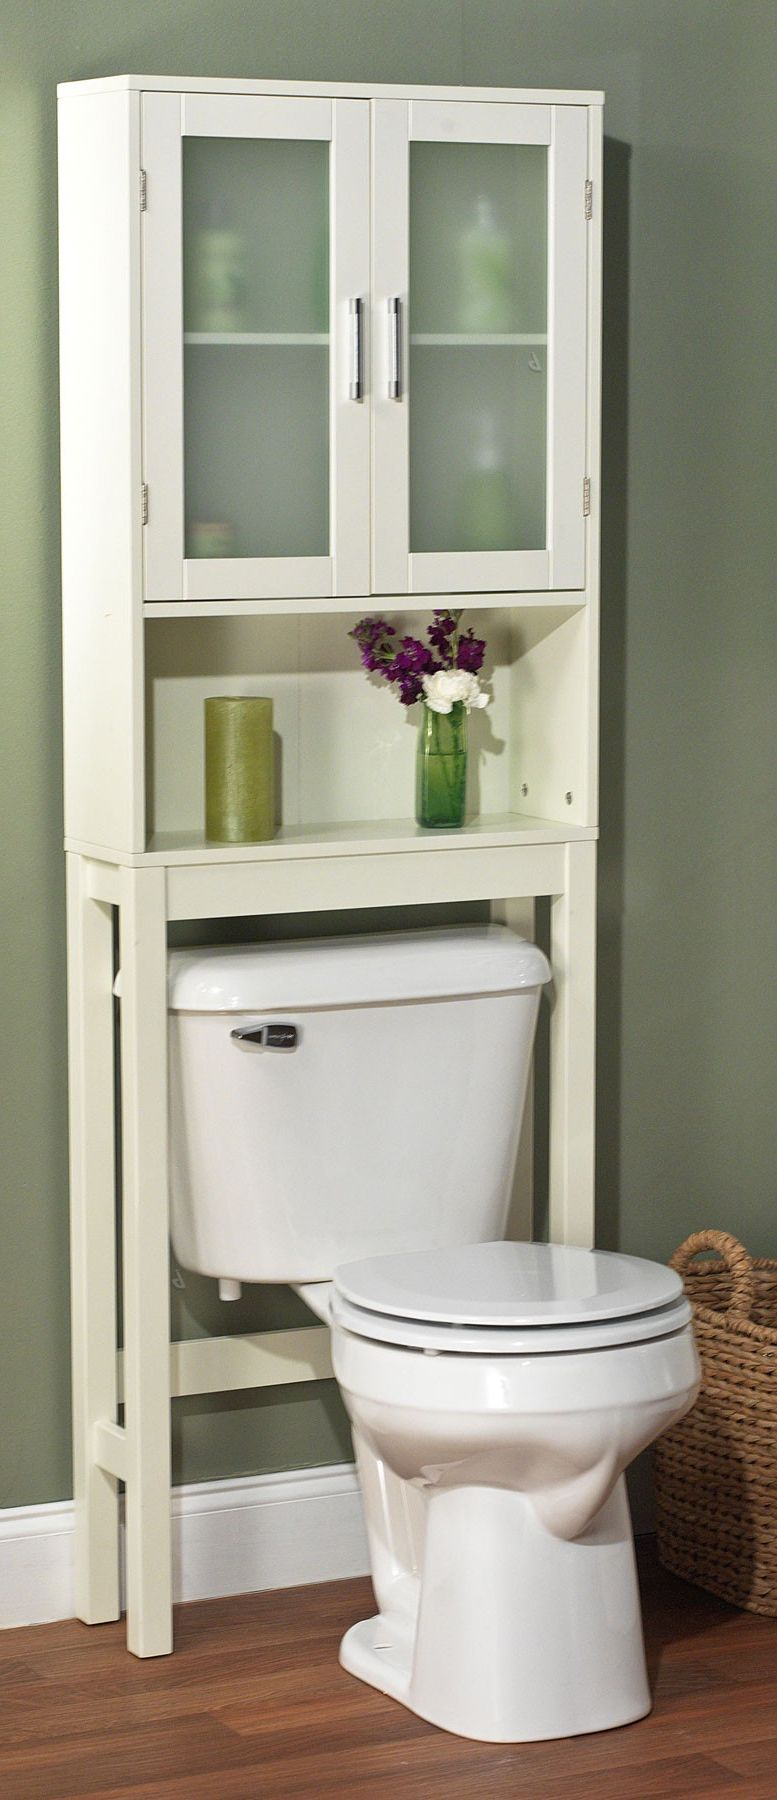 Bathroom Space Saver Ikea Bathroom Space Saver Over Toilet Cupboard Such A Good Idea For